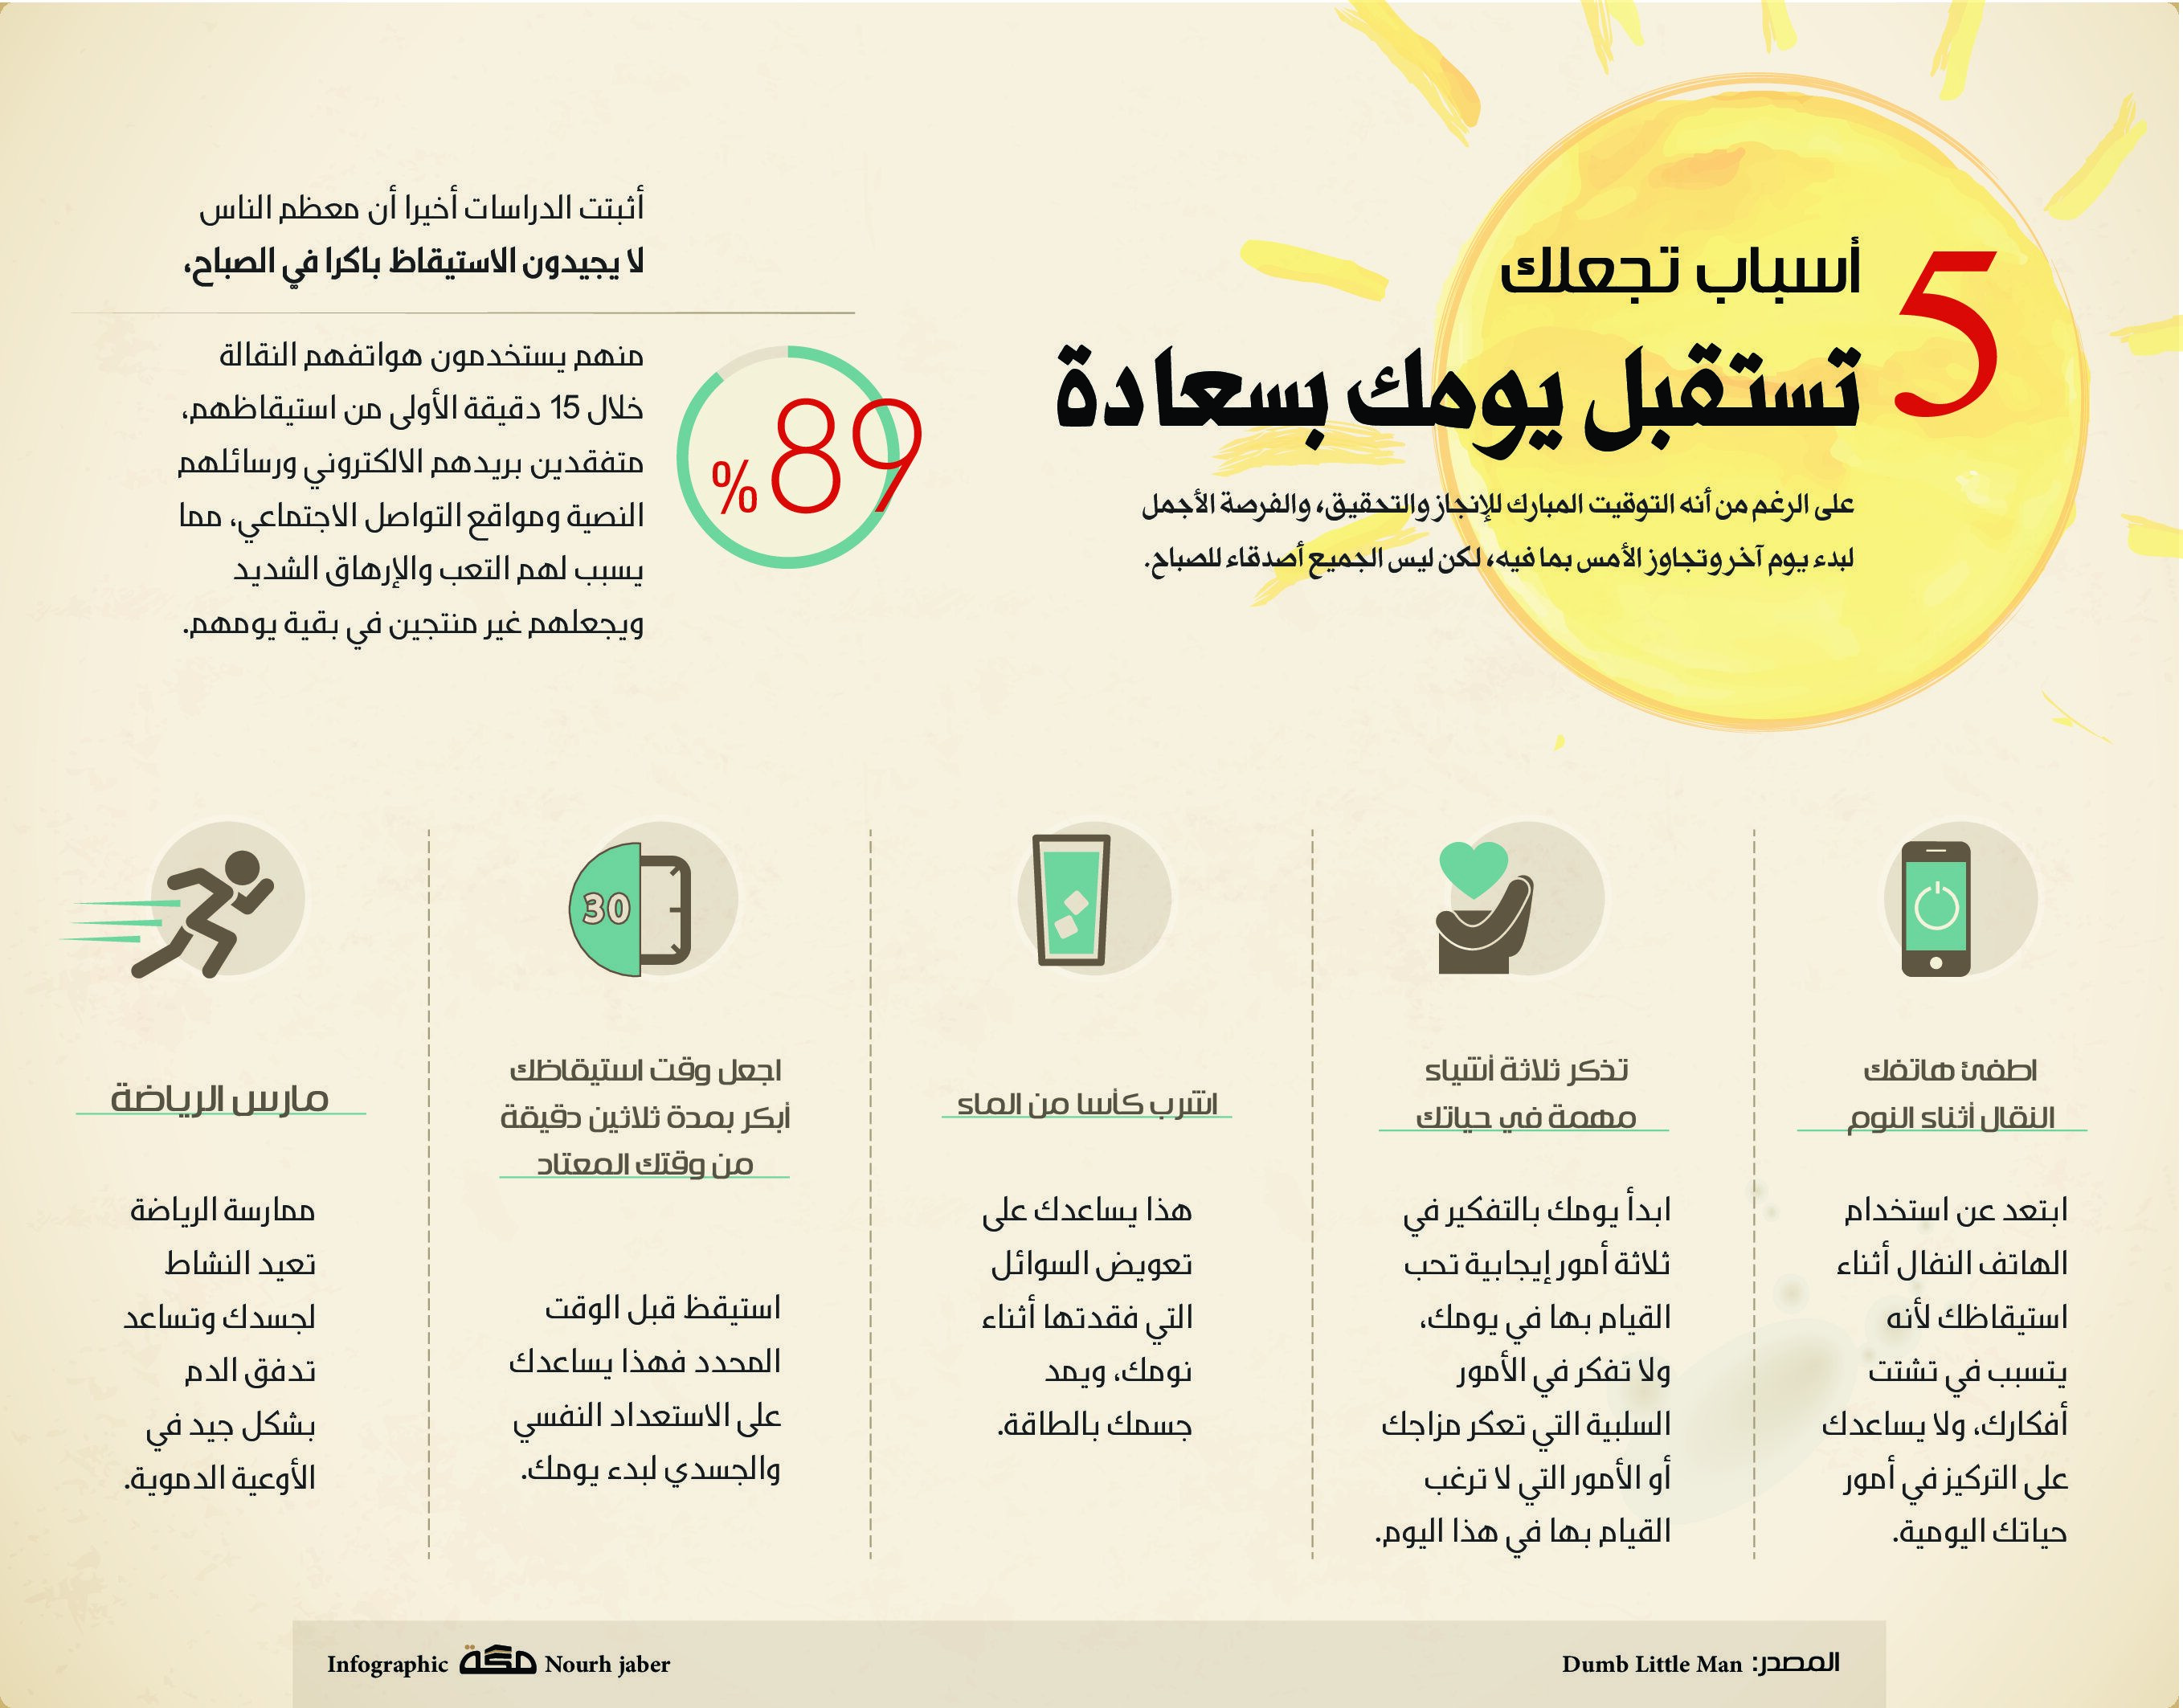 Pin By Newspaper On Infographic Makkahnp Infographic Bullet Journal Journal